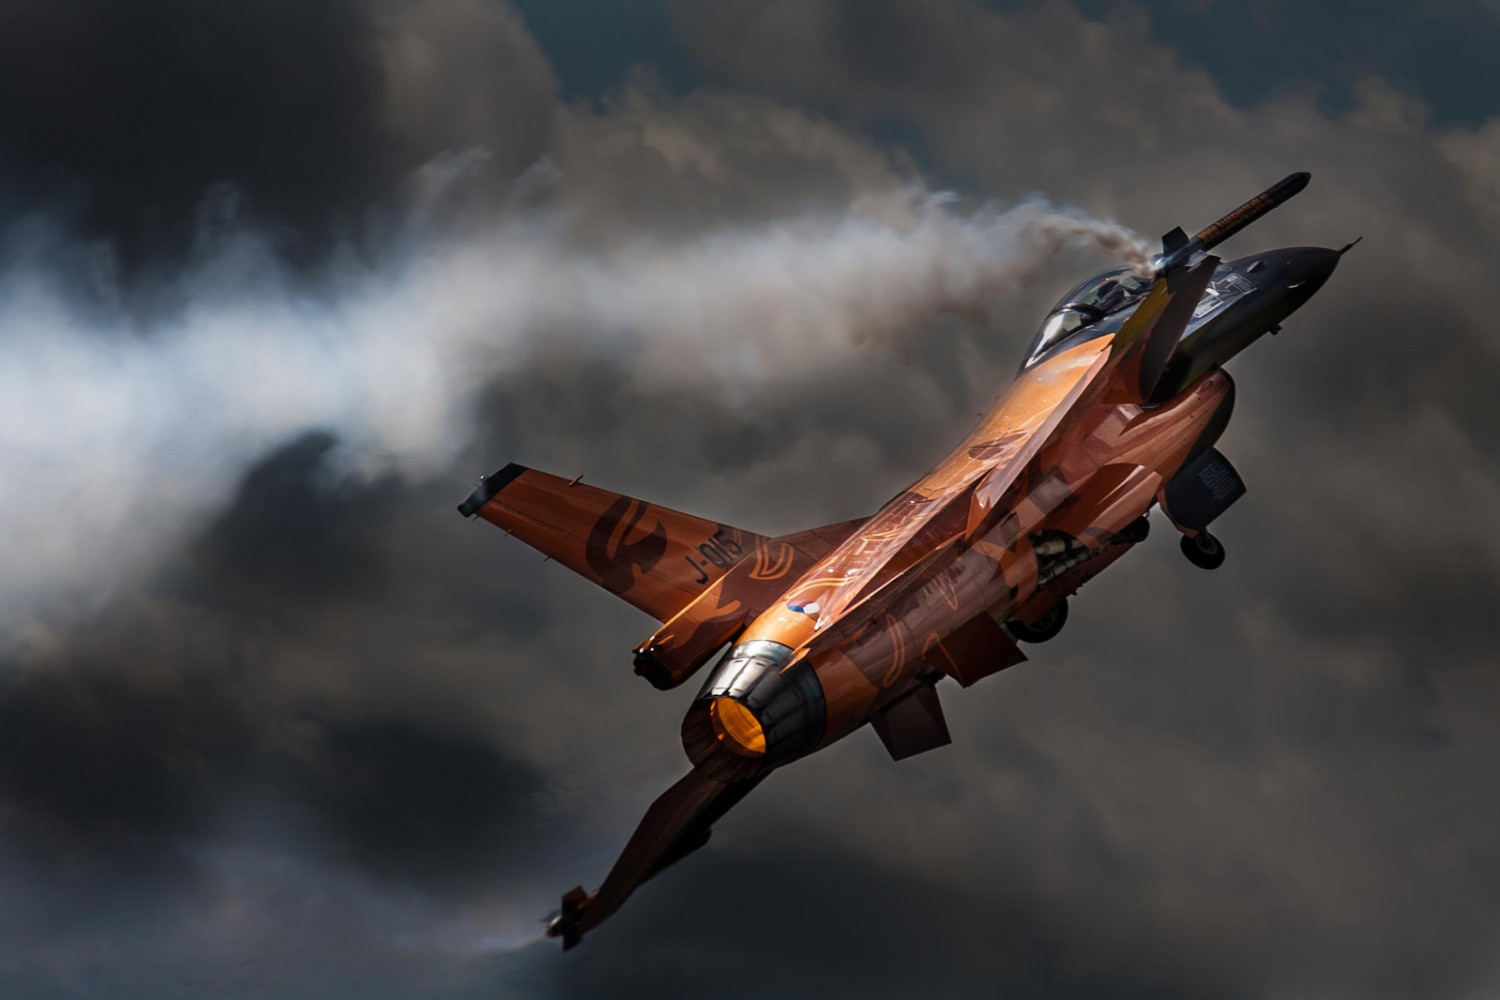 Blast Into the Weekend with 25 Incredible Fighter Jet Photos